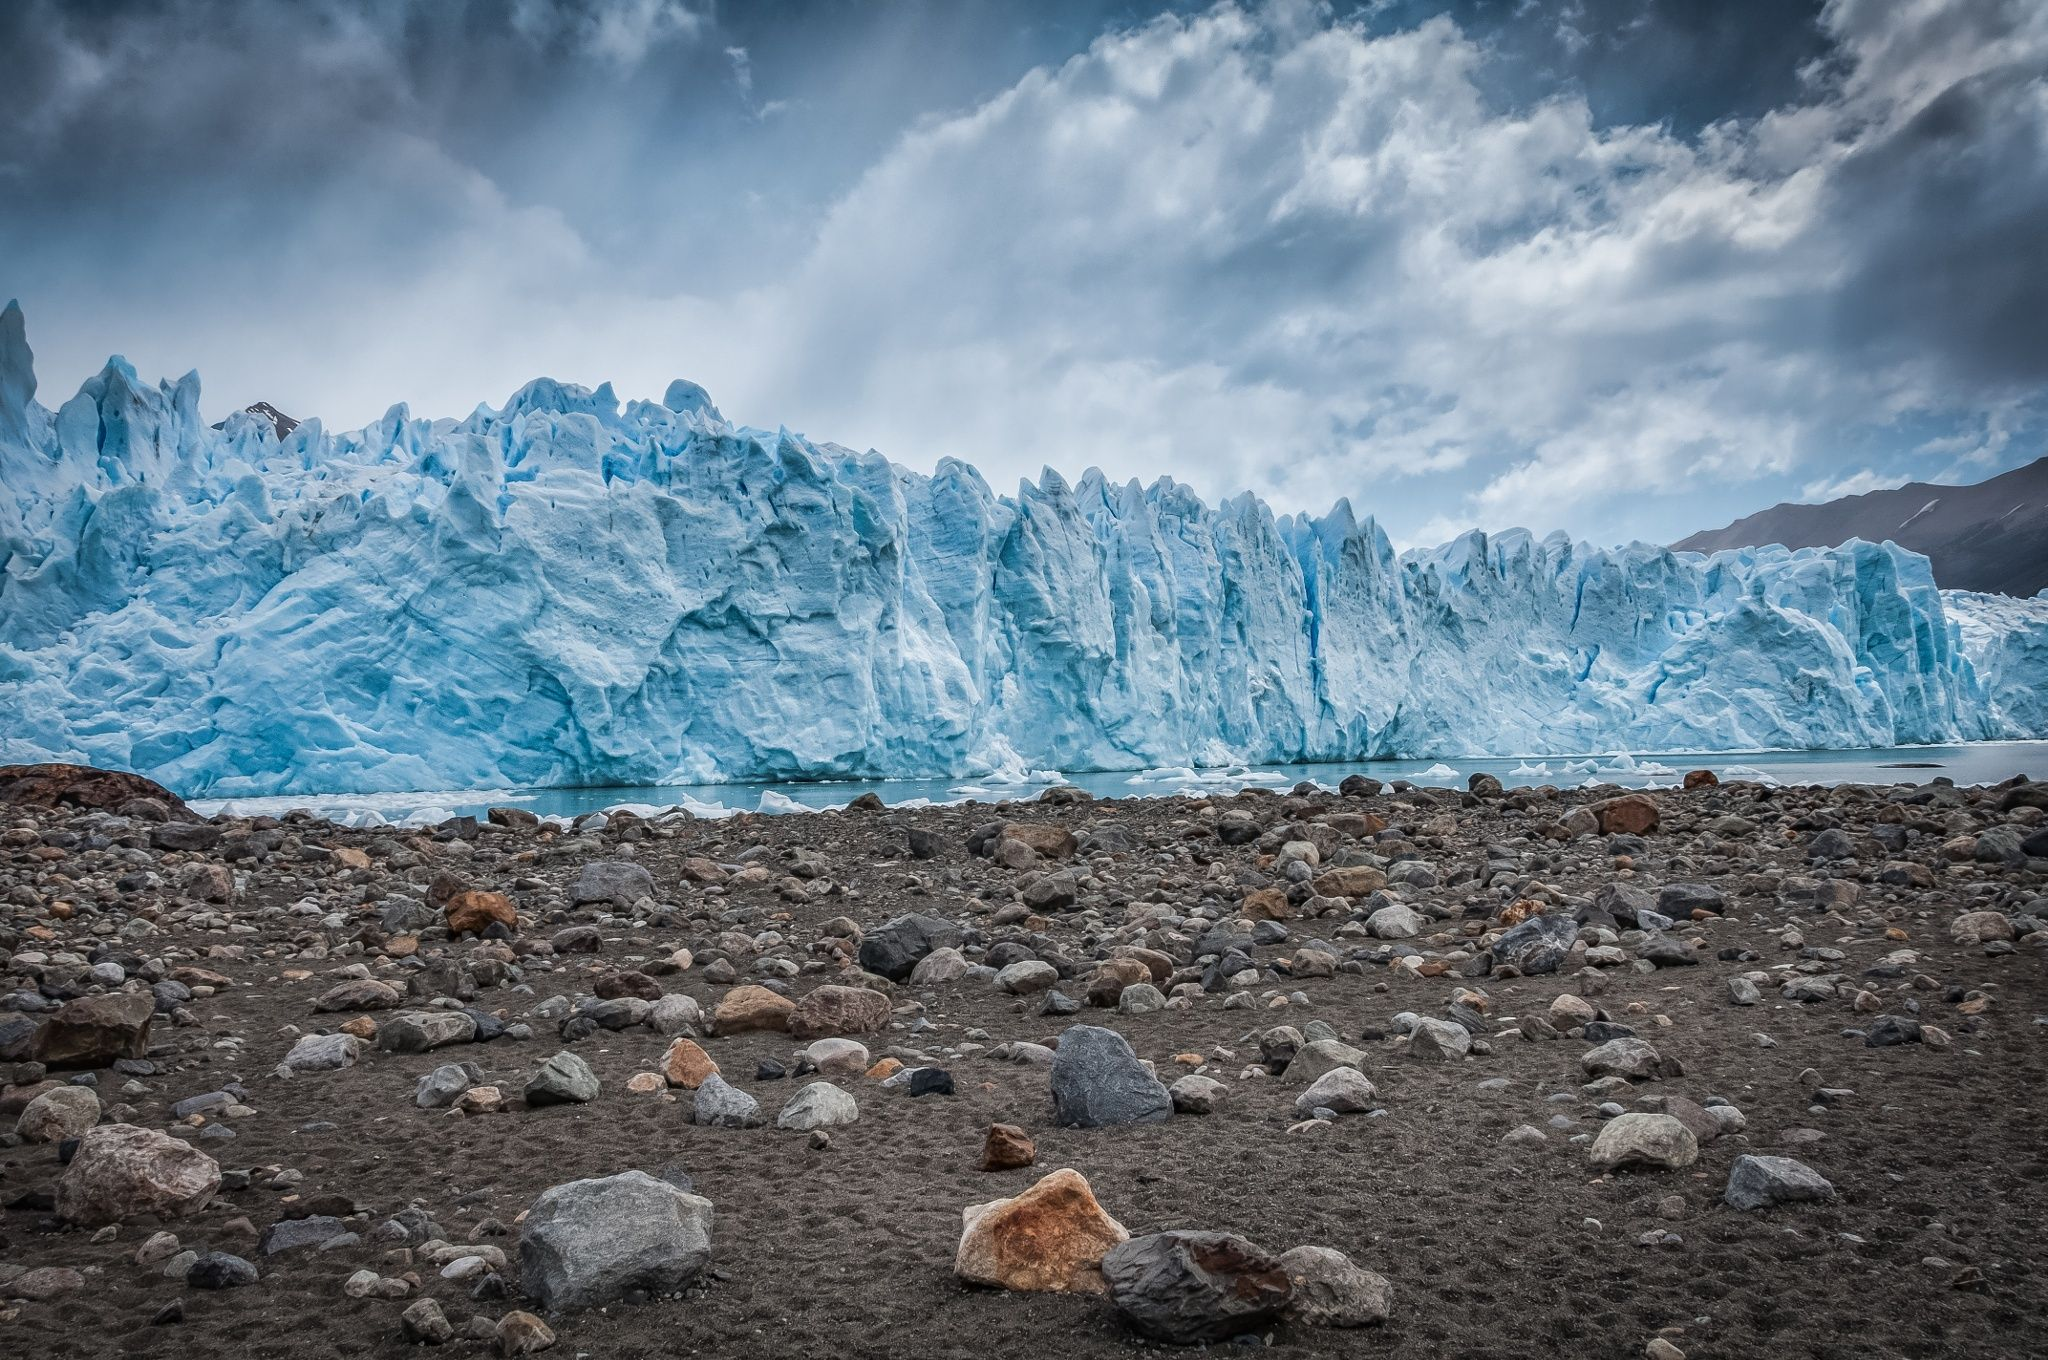 Patagonia Ice Cap by Robert Peddle on 500px